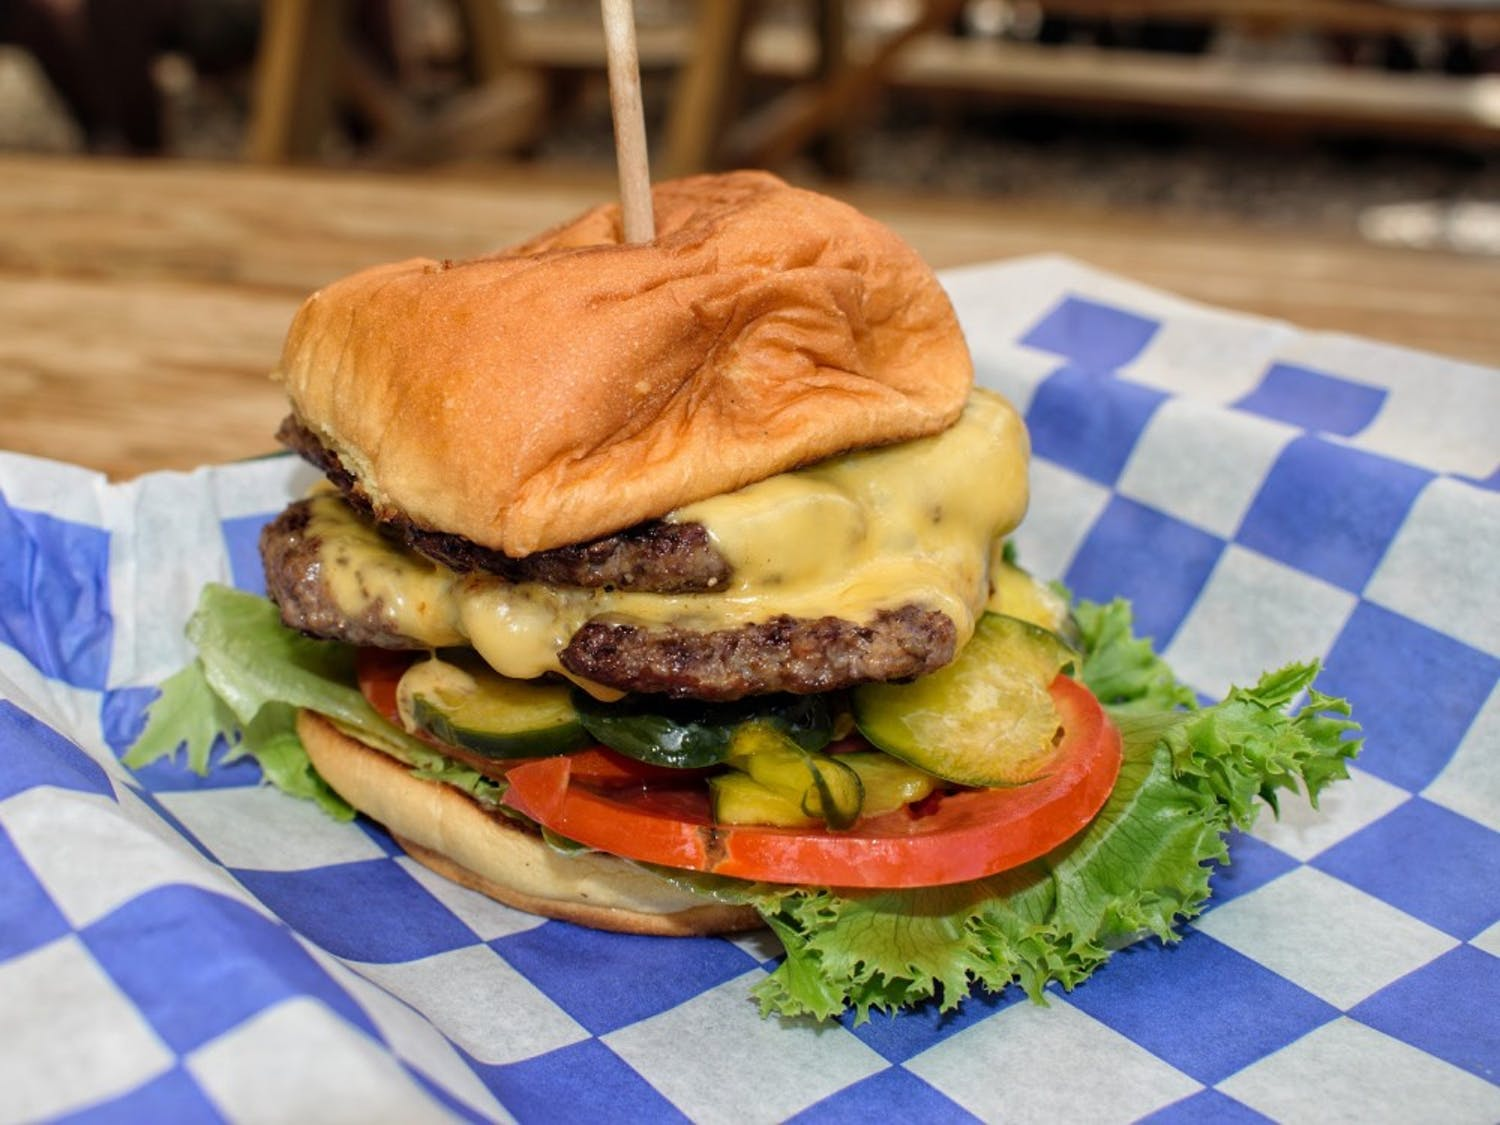 Durham's Eastcut Sandwich Bar serves up a burger that holds its own against the city's large offering of beef patties.